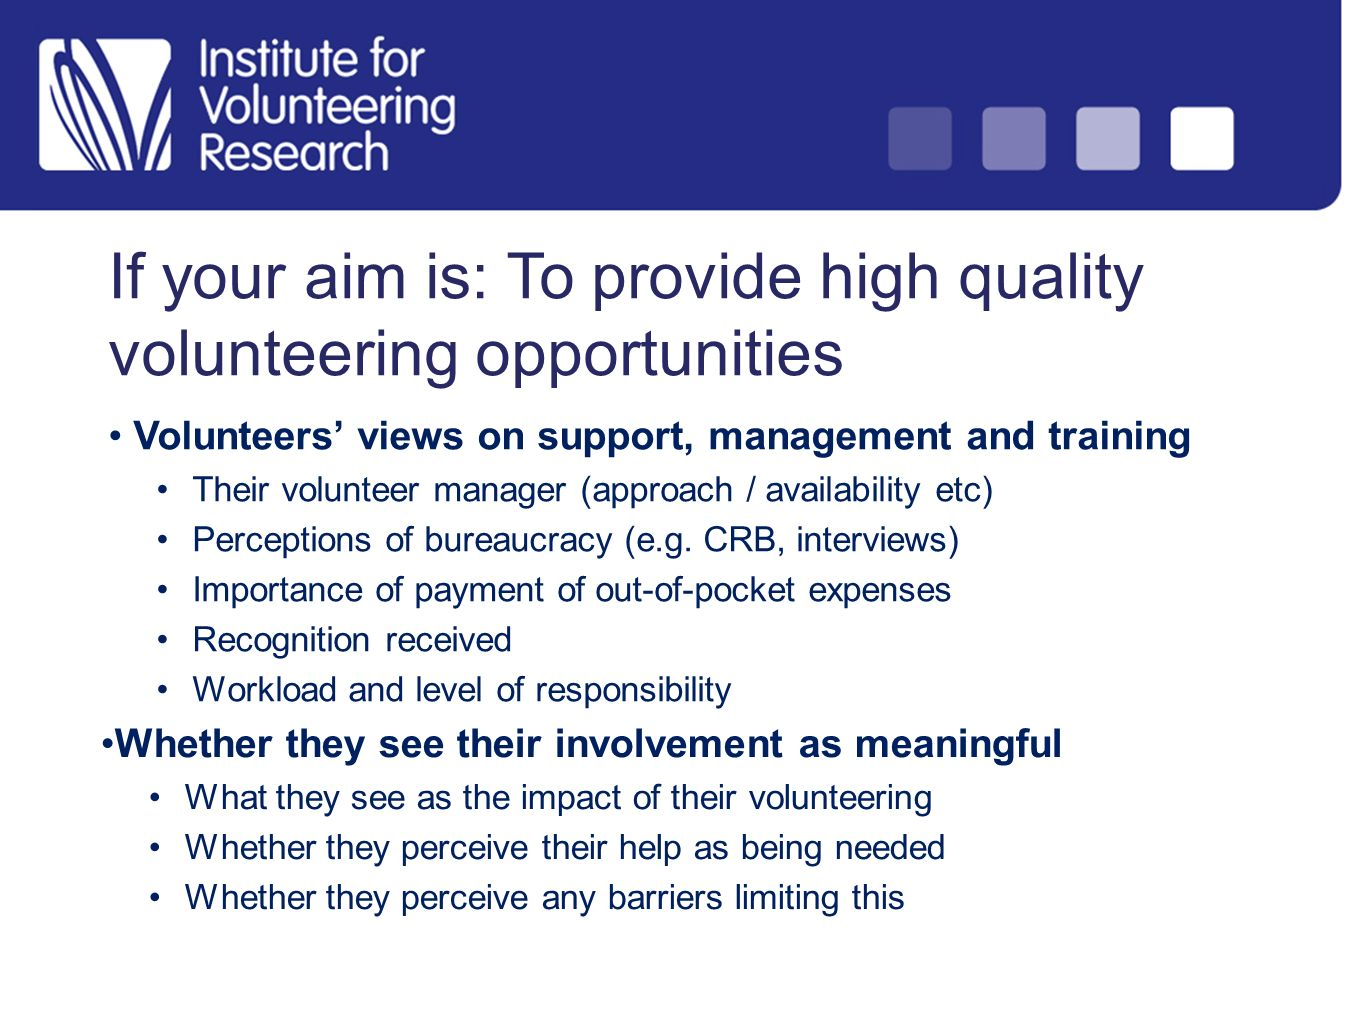 If your aim is: To provide high quality volunteering opportunities Volunteers views on support, management and training Their volunteer manager (appro